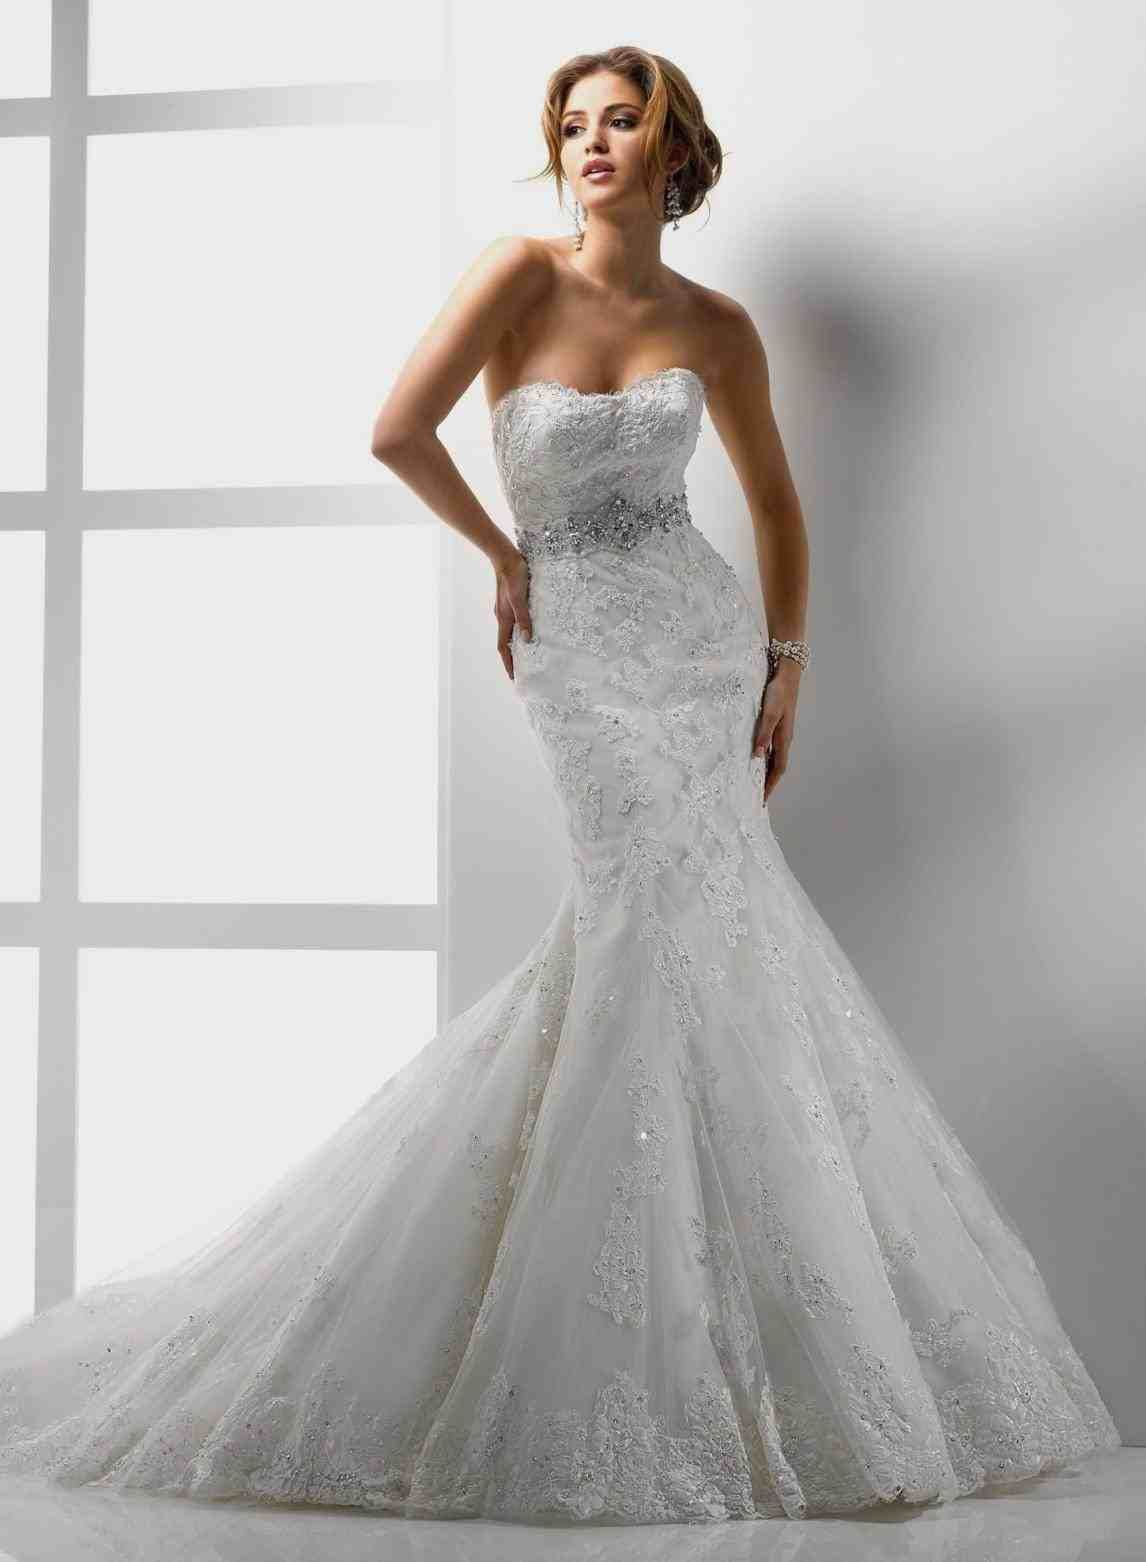 Dresses wedding with bling on top forecast dress for everyday in 2019